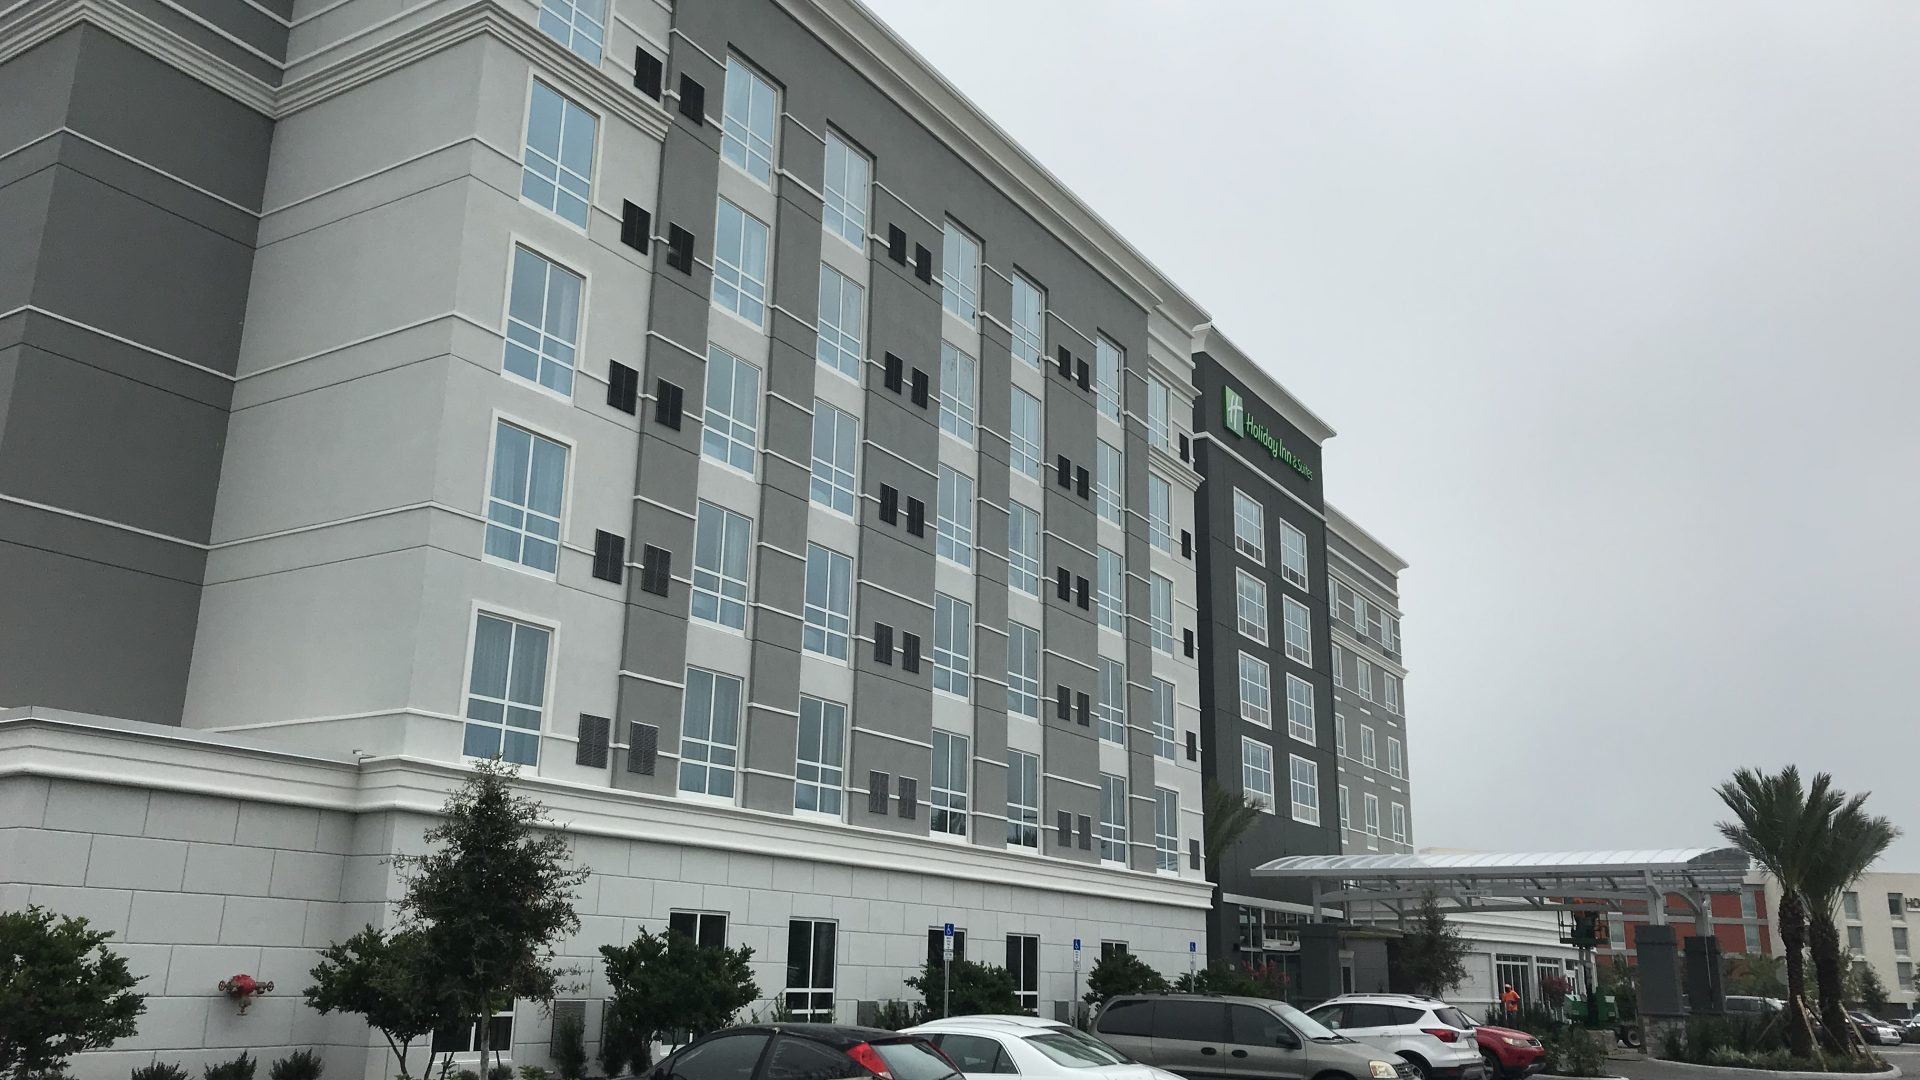 Holiday Inn - Hospitality Project General Contractor